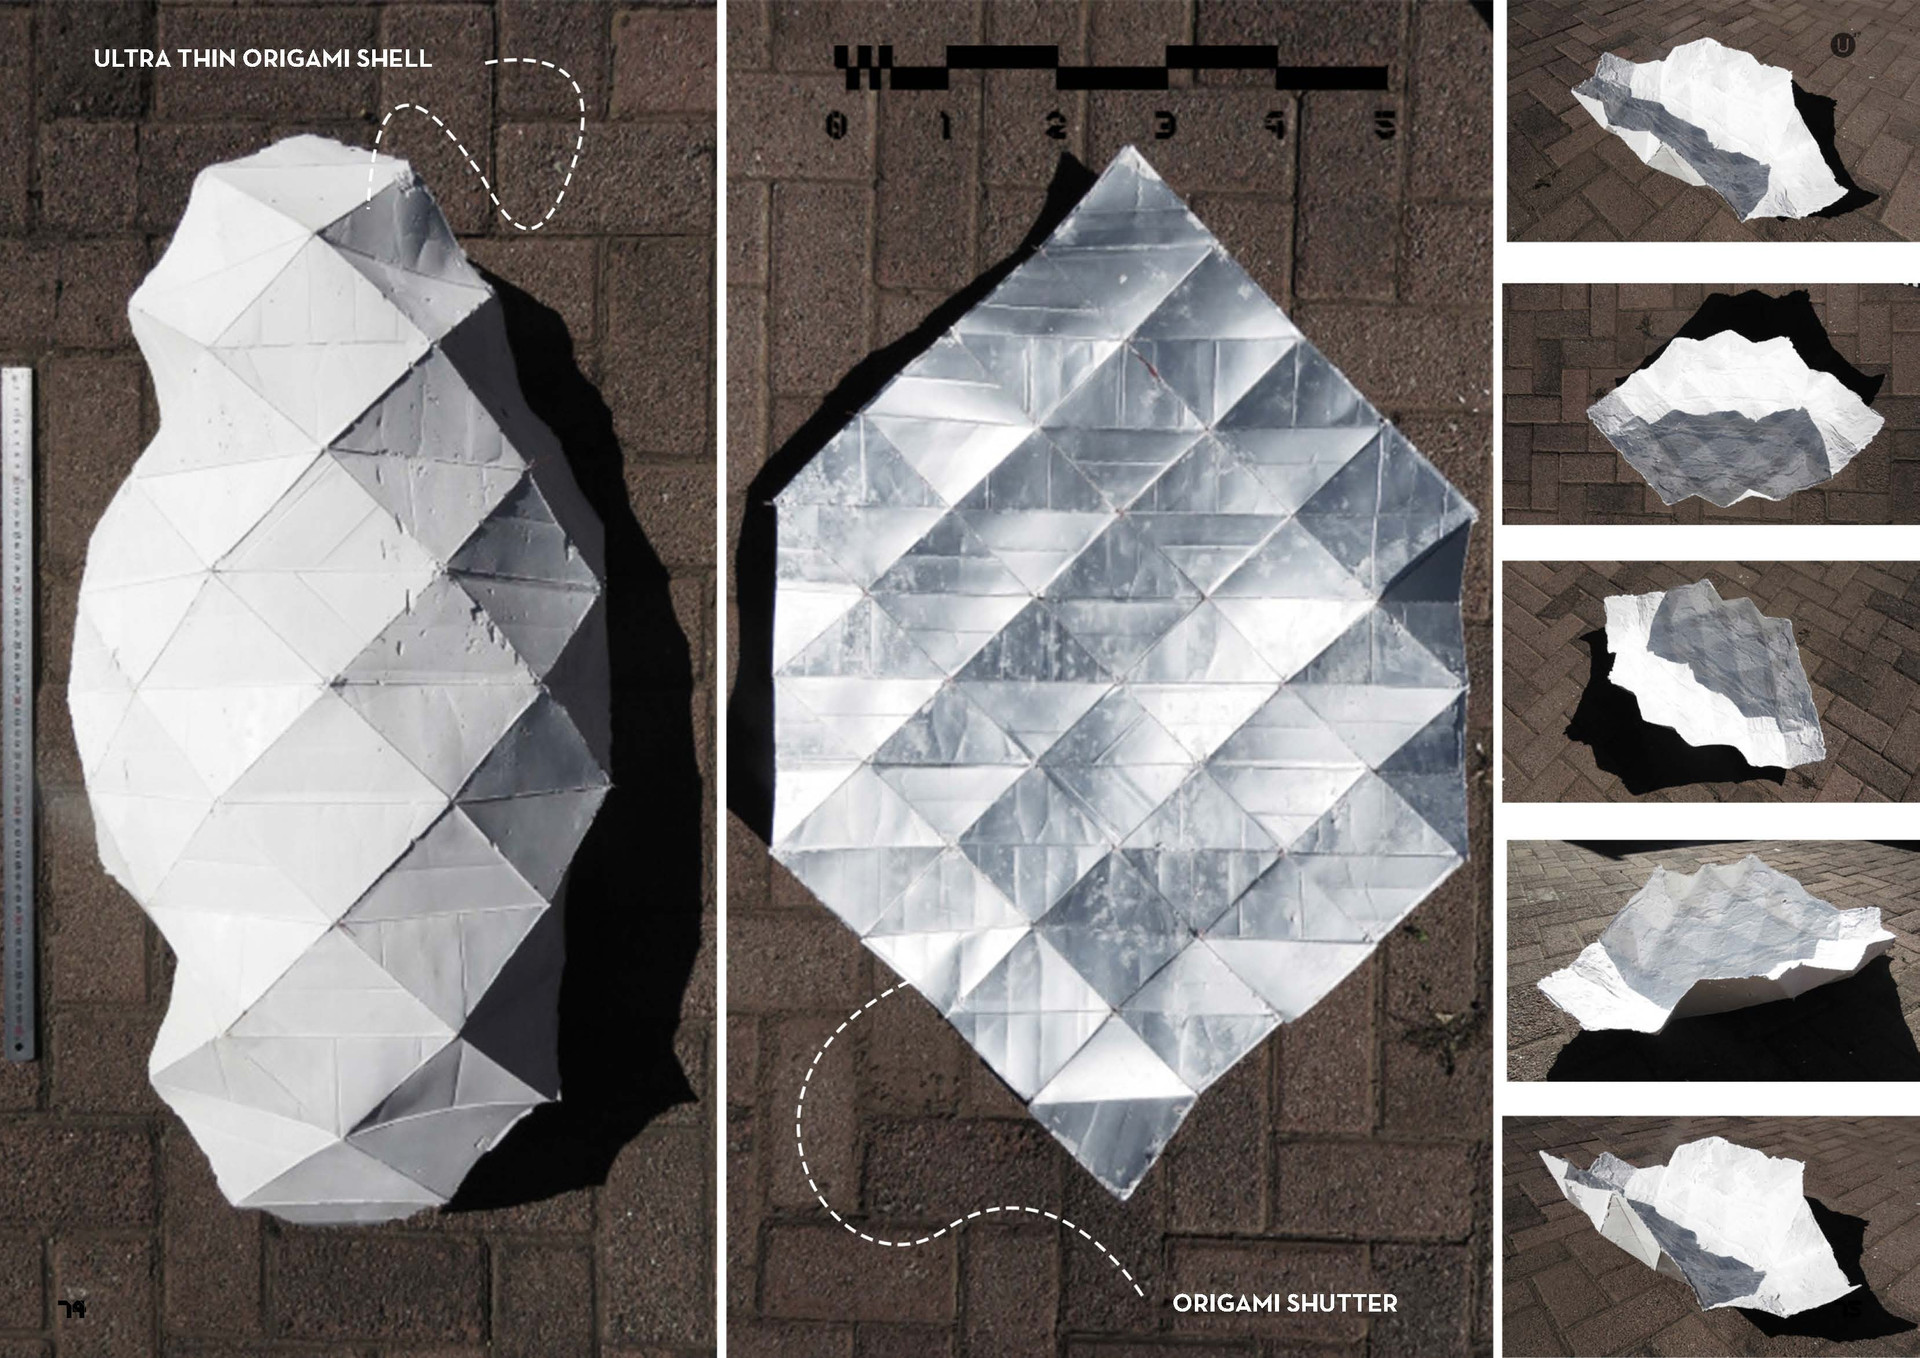 Origami Shutters 4.0 (2). Stephan, T. Unit 17. 2020